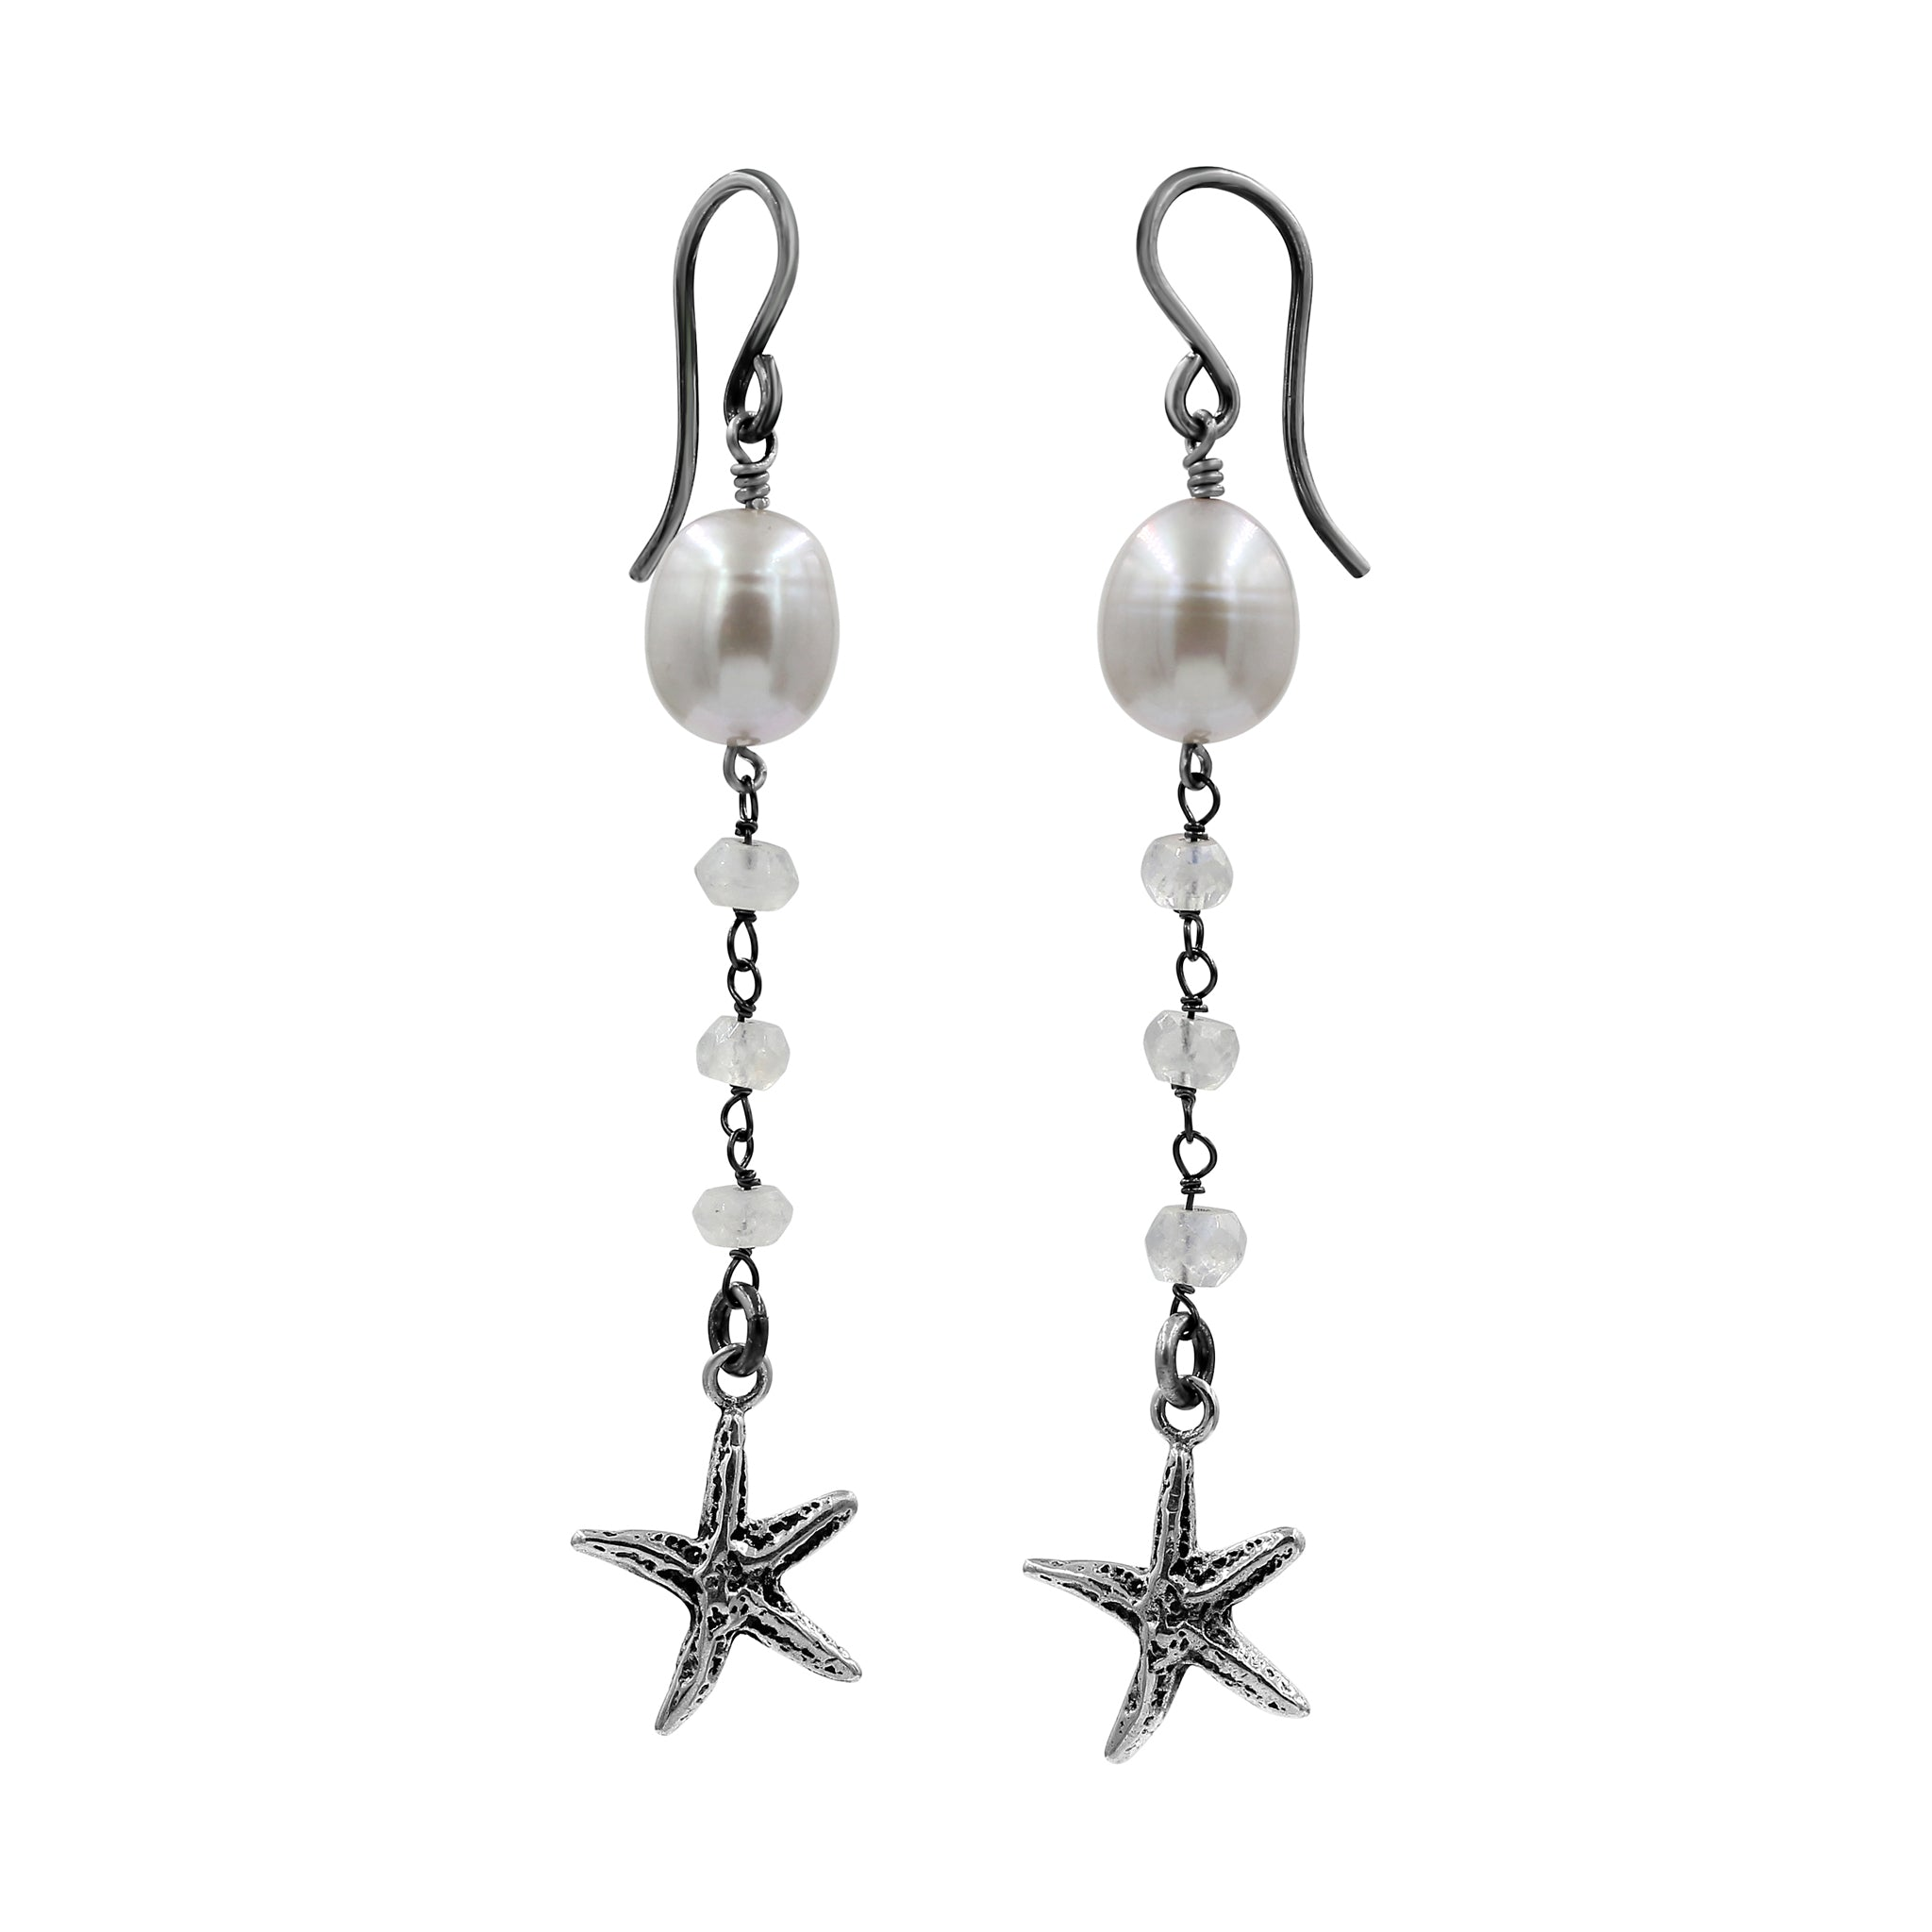 Star Bright Moonstone Earrings - Sati Gems Hawaii Healing Crystal Gemstone Jewelry